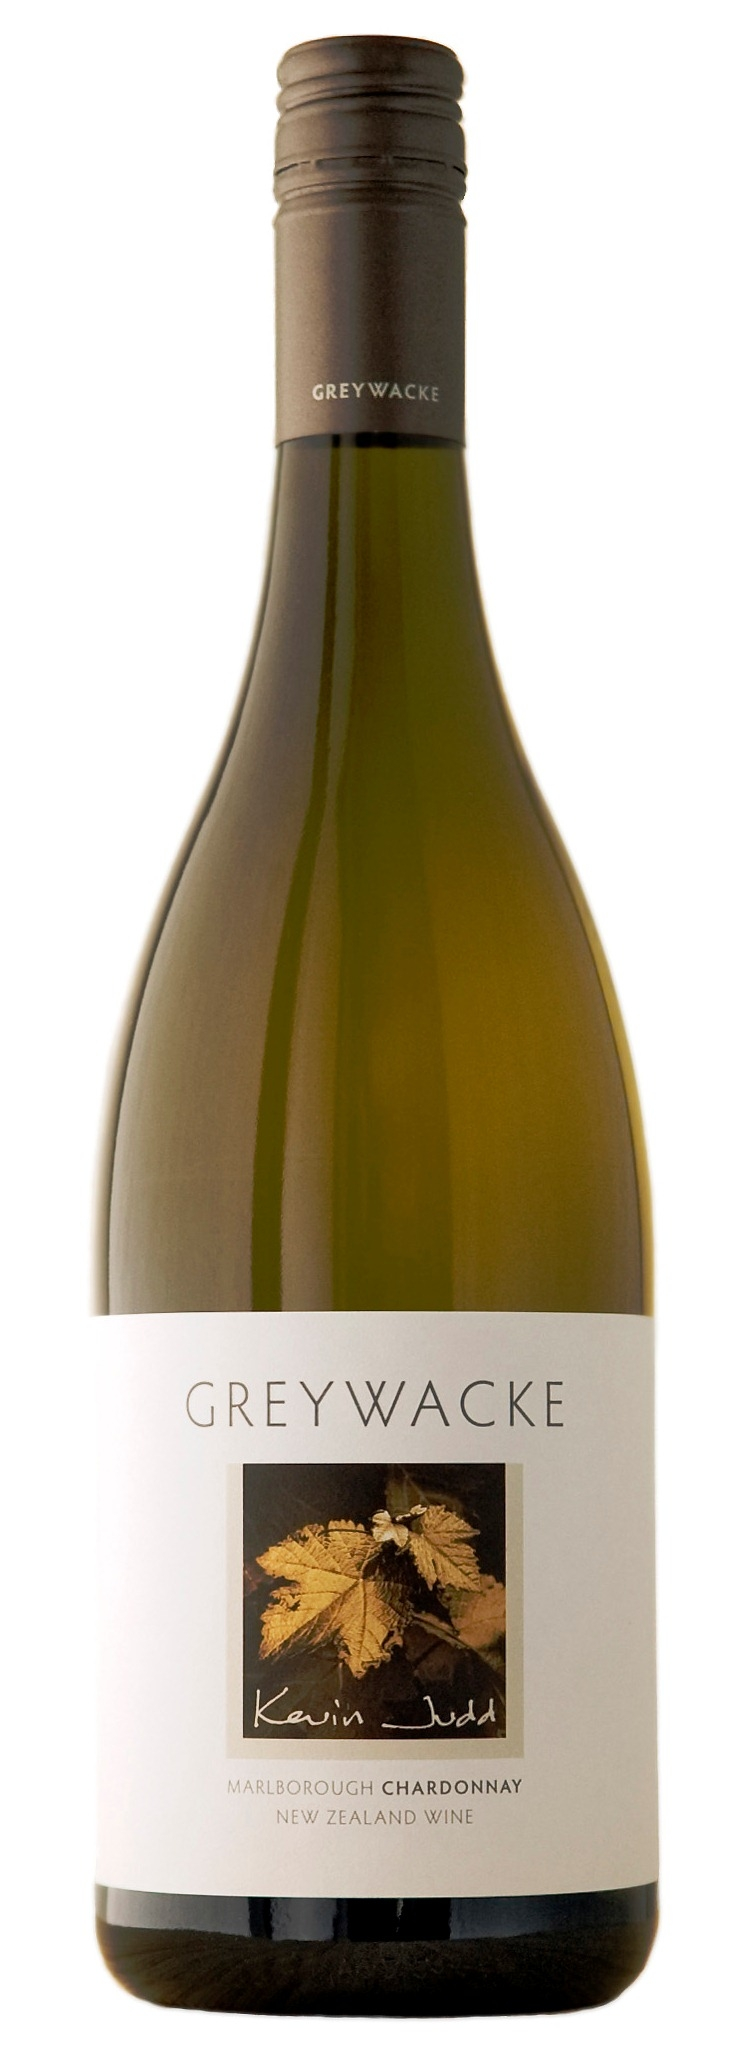 Greywacke, Marlborough Chardonnay 2015